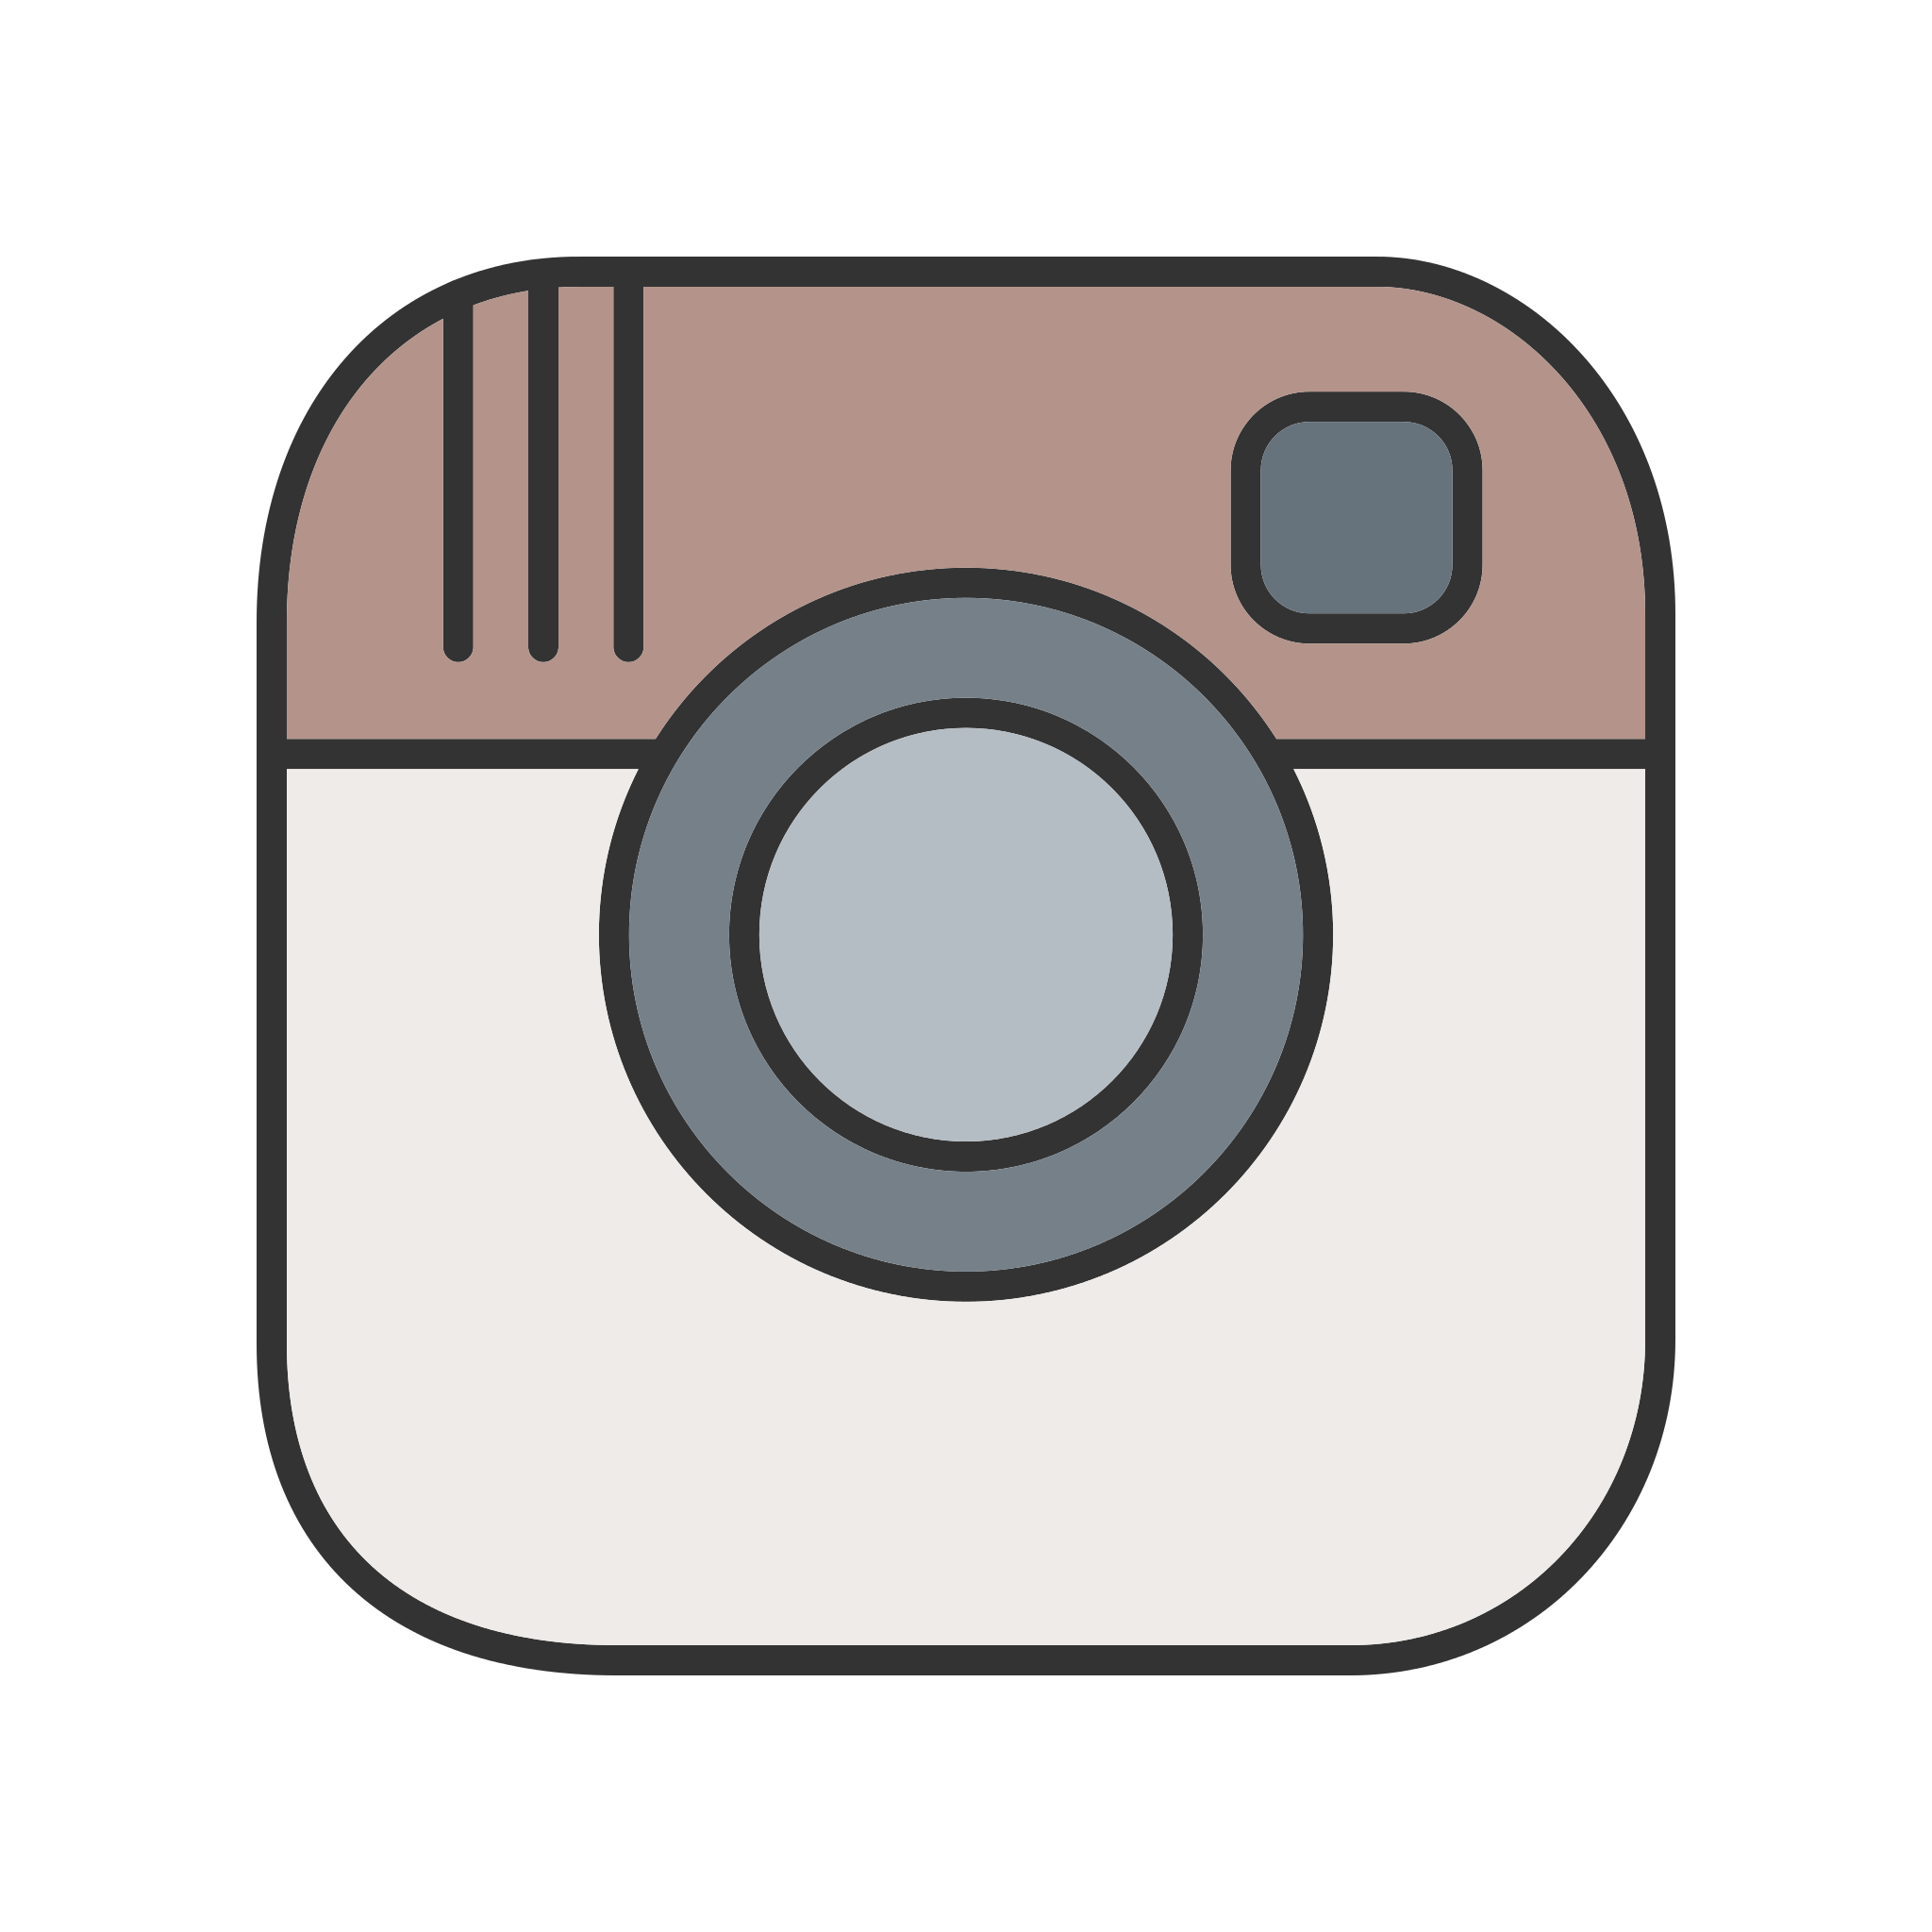 https://sguru.org/wp-content/uploads/2018/01/logo-app-pictures-photo-network-instagram-social-icon.png Instagram